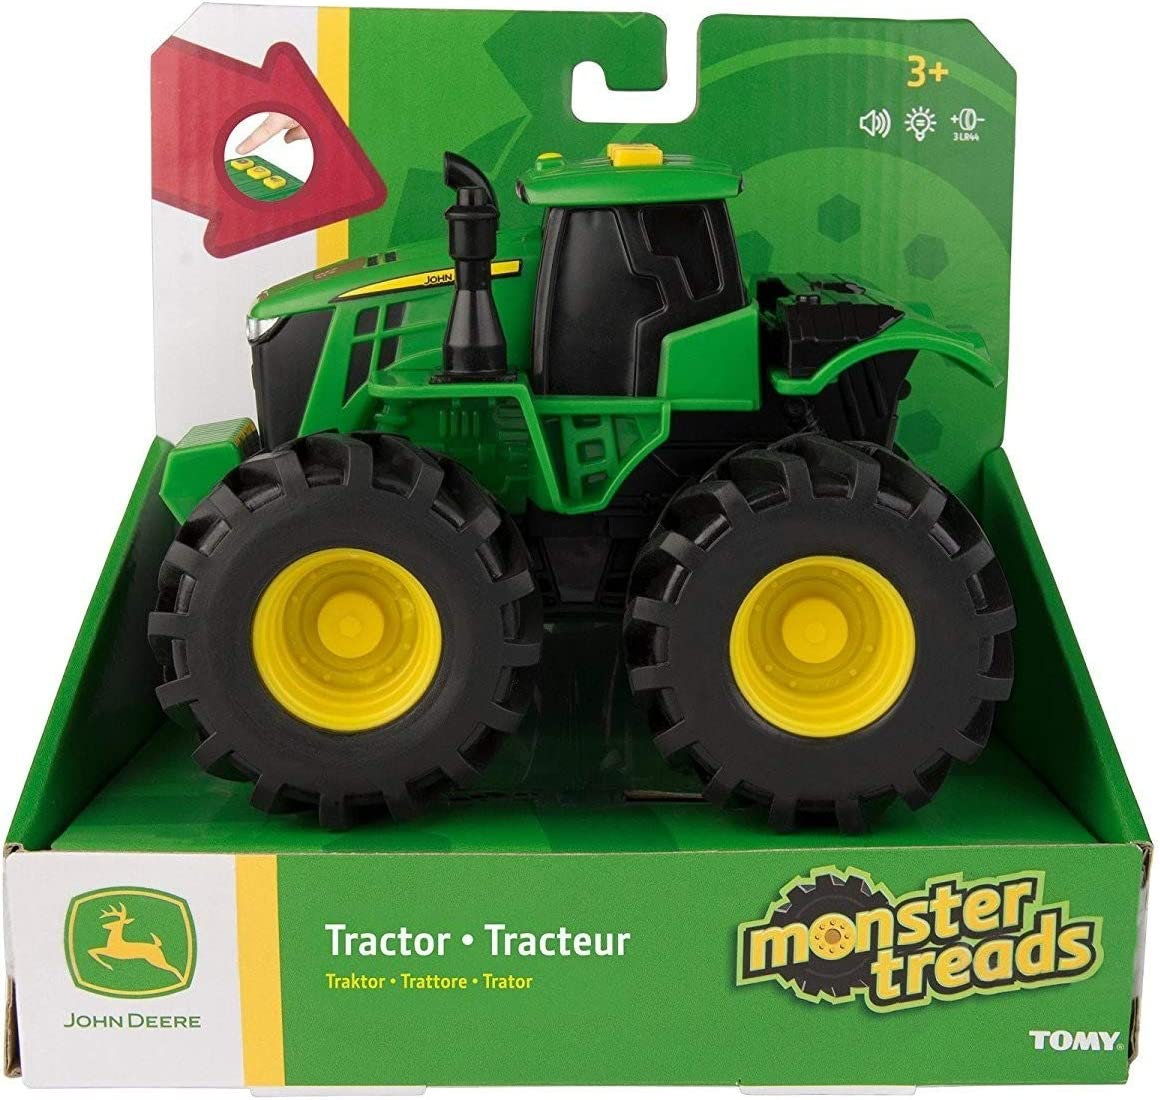 John Deere John Deere-46656 Monster treads, Multicolor (Tomy 46656)